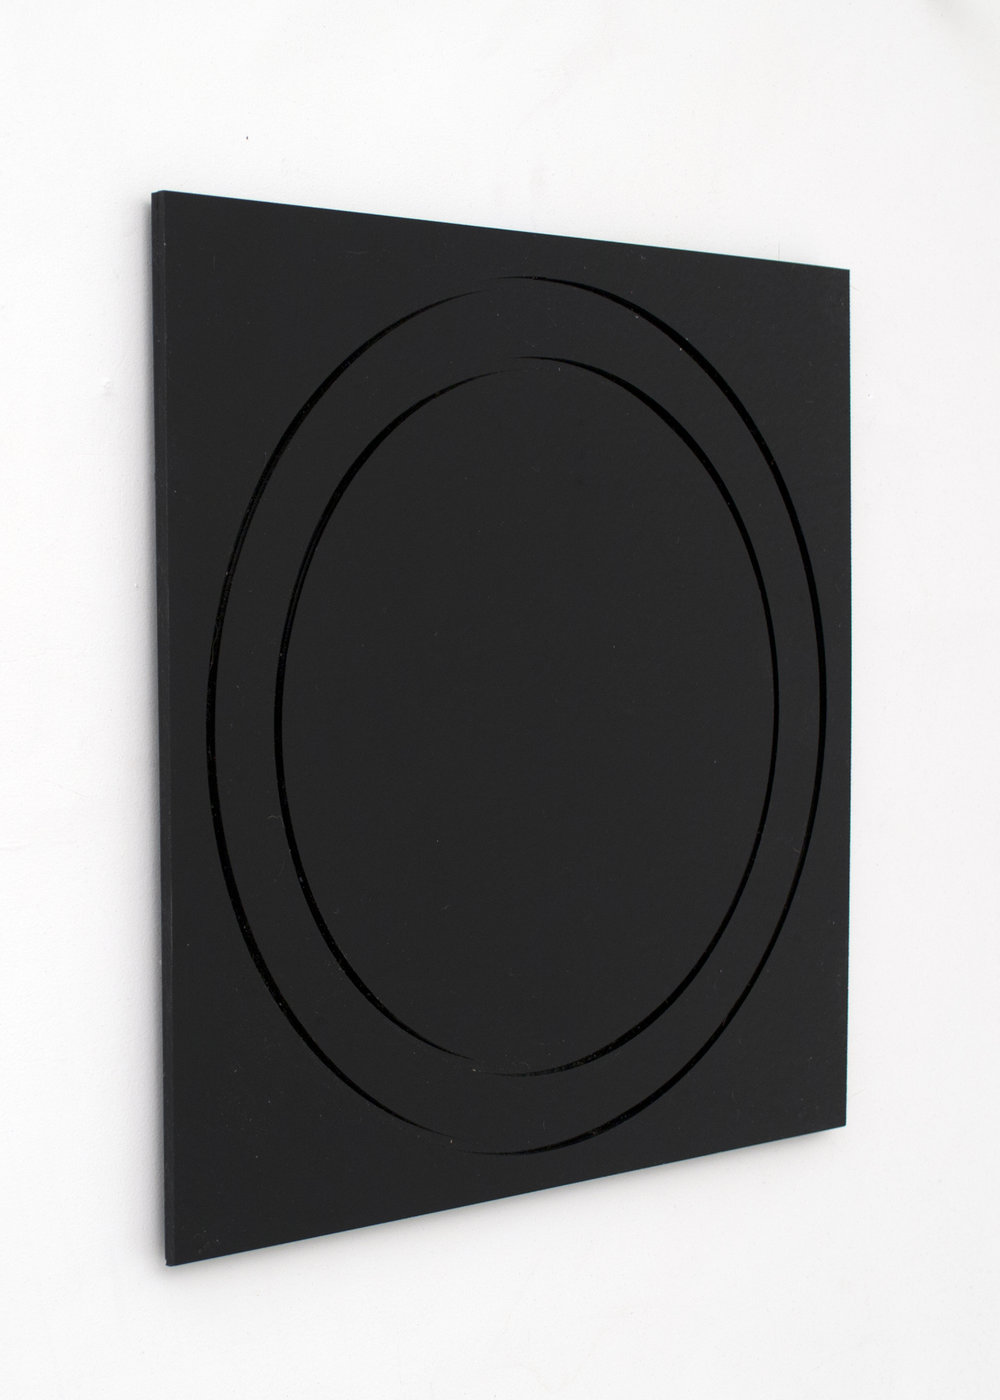 (untitled - inset annulus)